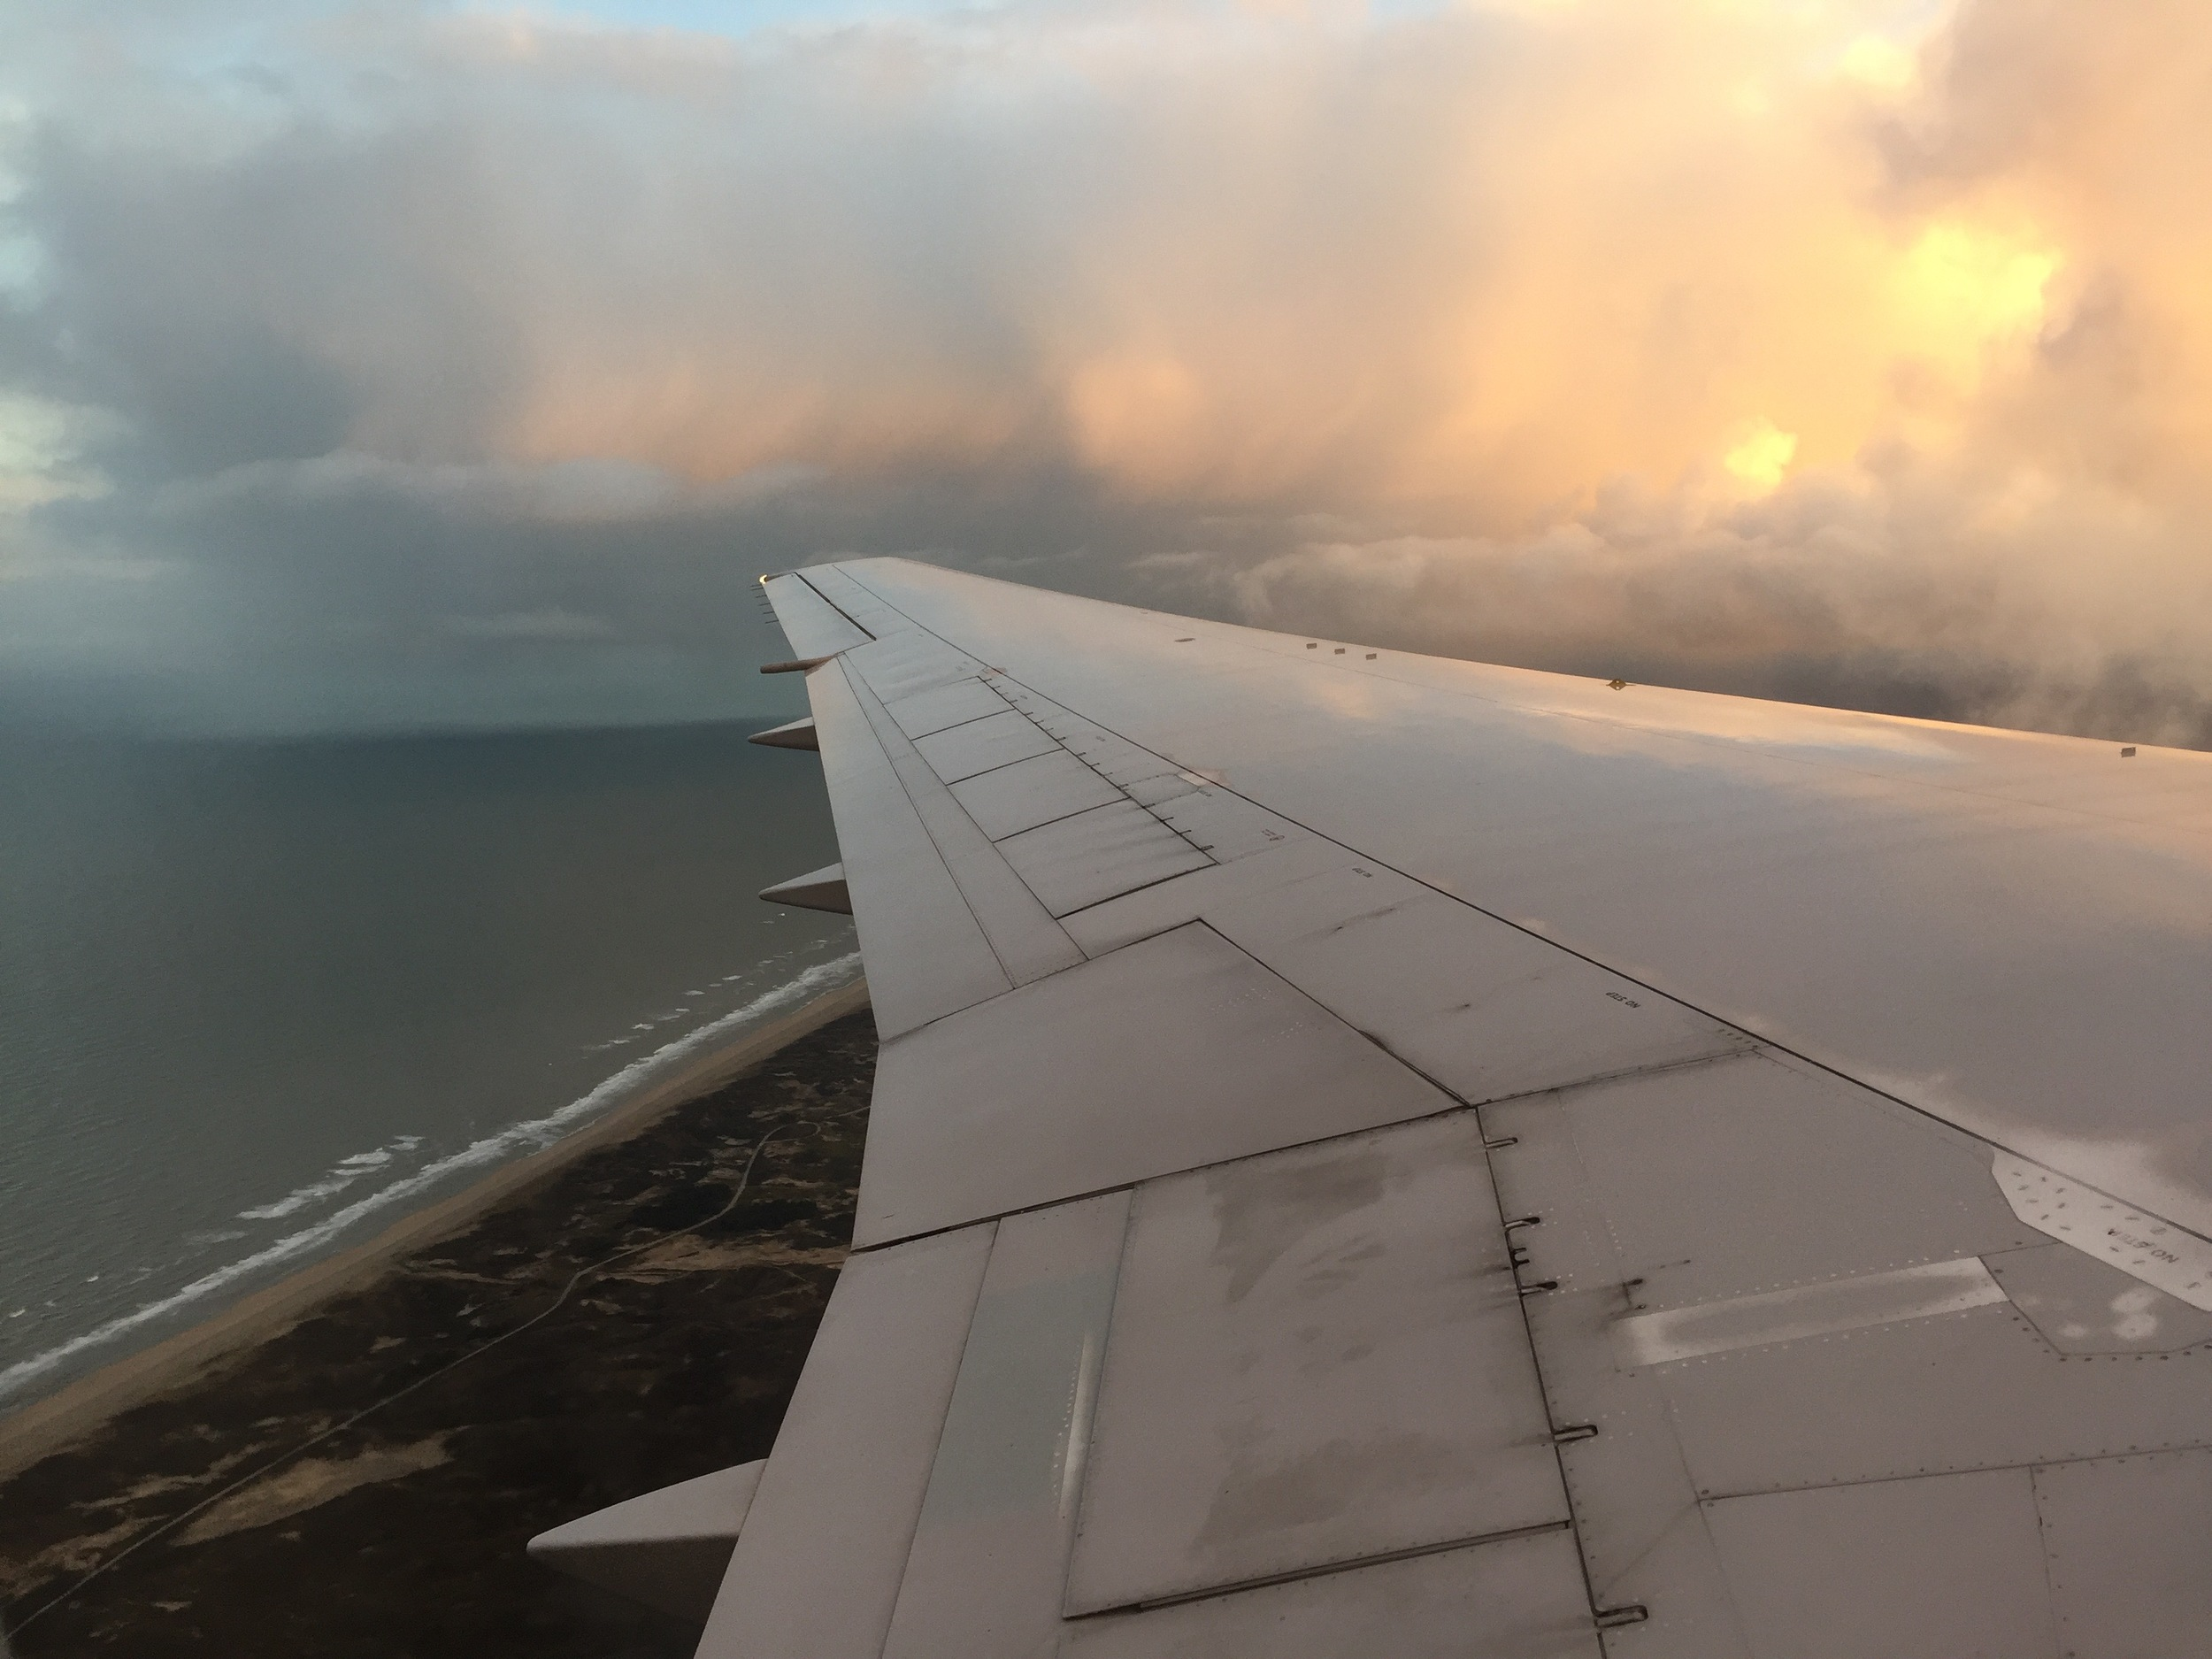 A few hundred feet over the sandy coastline of the Netherlands, just before landing at Schiphol (Photo by Andrew Evans)